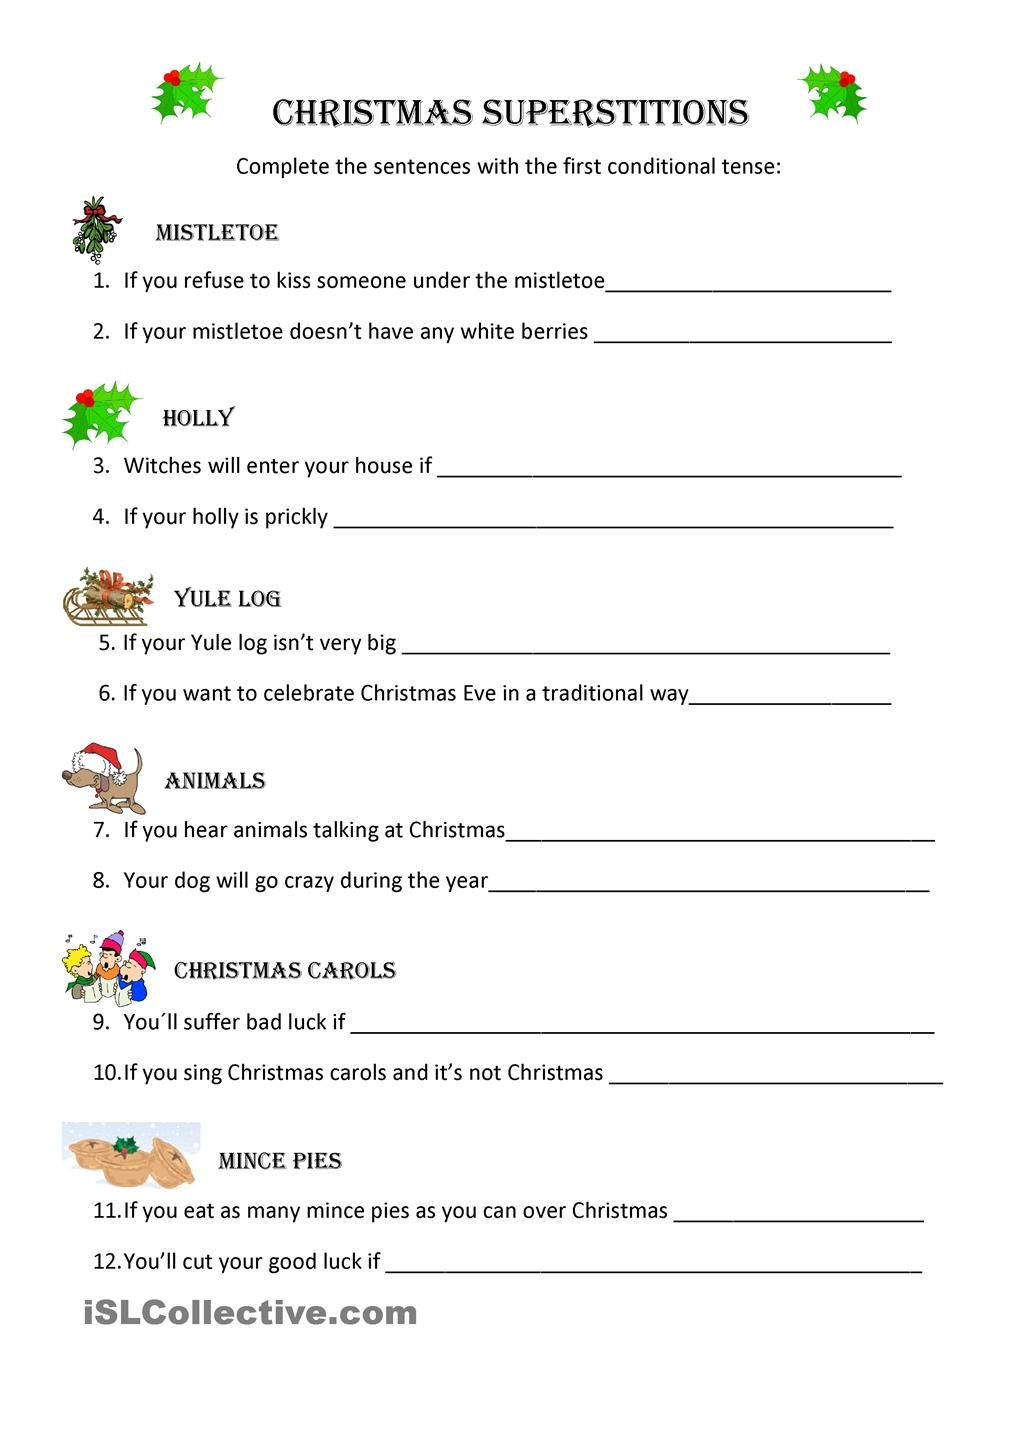 Christmas Superstitions Christmas Worksheets Superstition Teaching English [ 1440 x 1018 Pixel ]